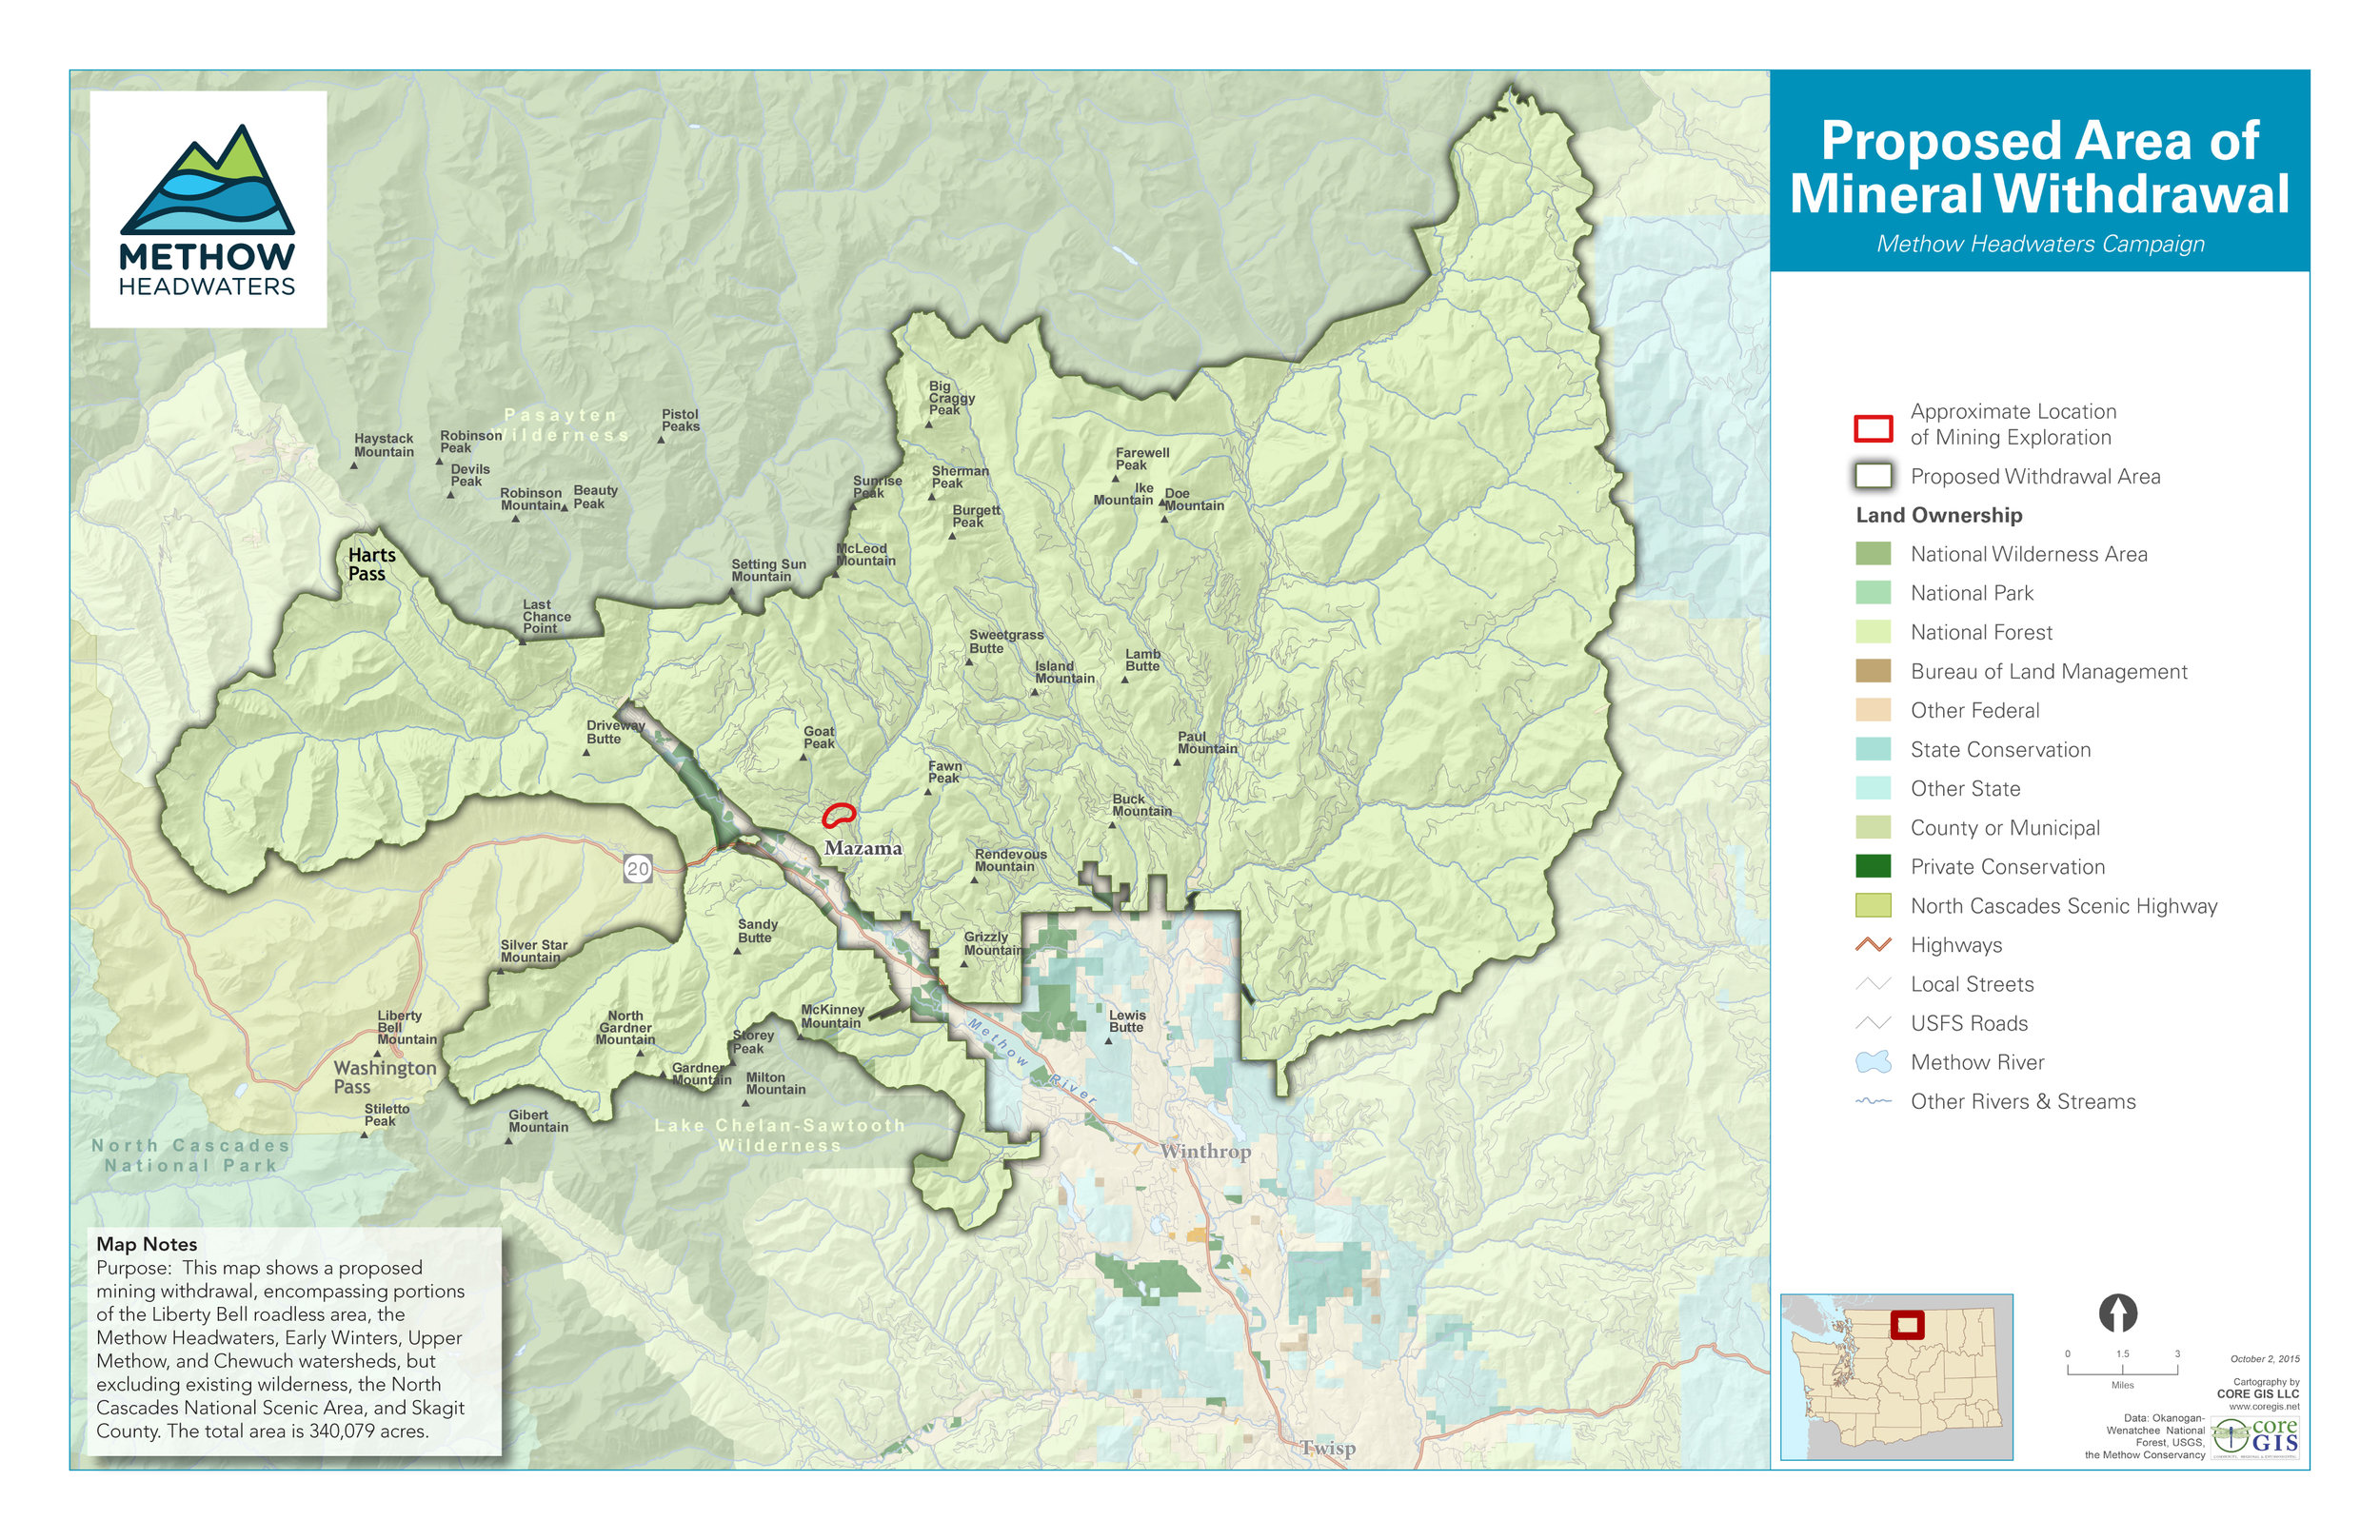 Map of headwaters area, used with permission by  Methow Headwaters .